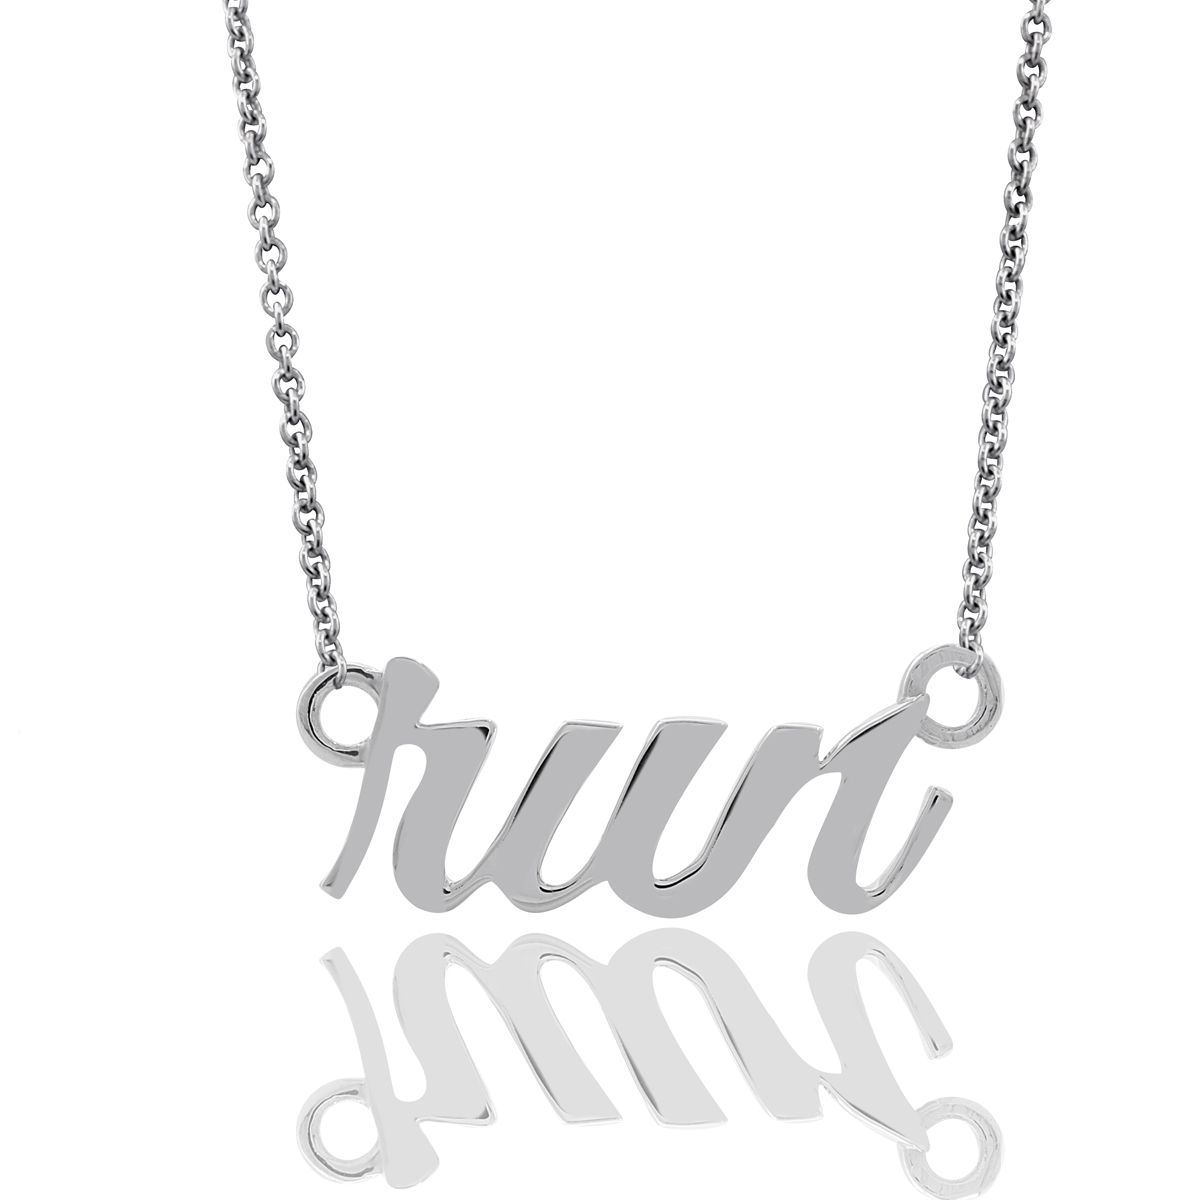 Endure Runner Gifts Necklace Cursive Run Neklace Sterling Silver Running